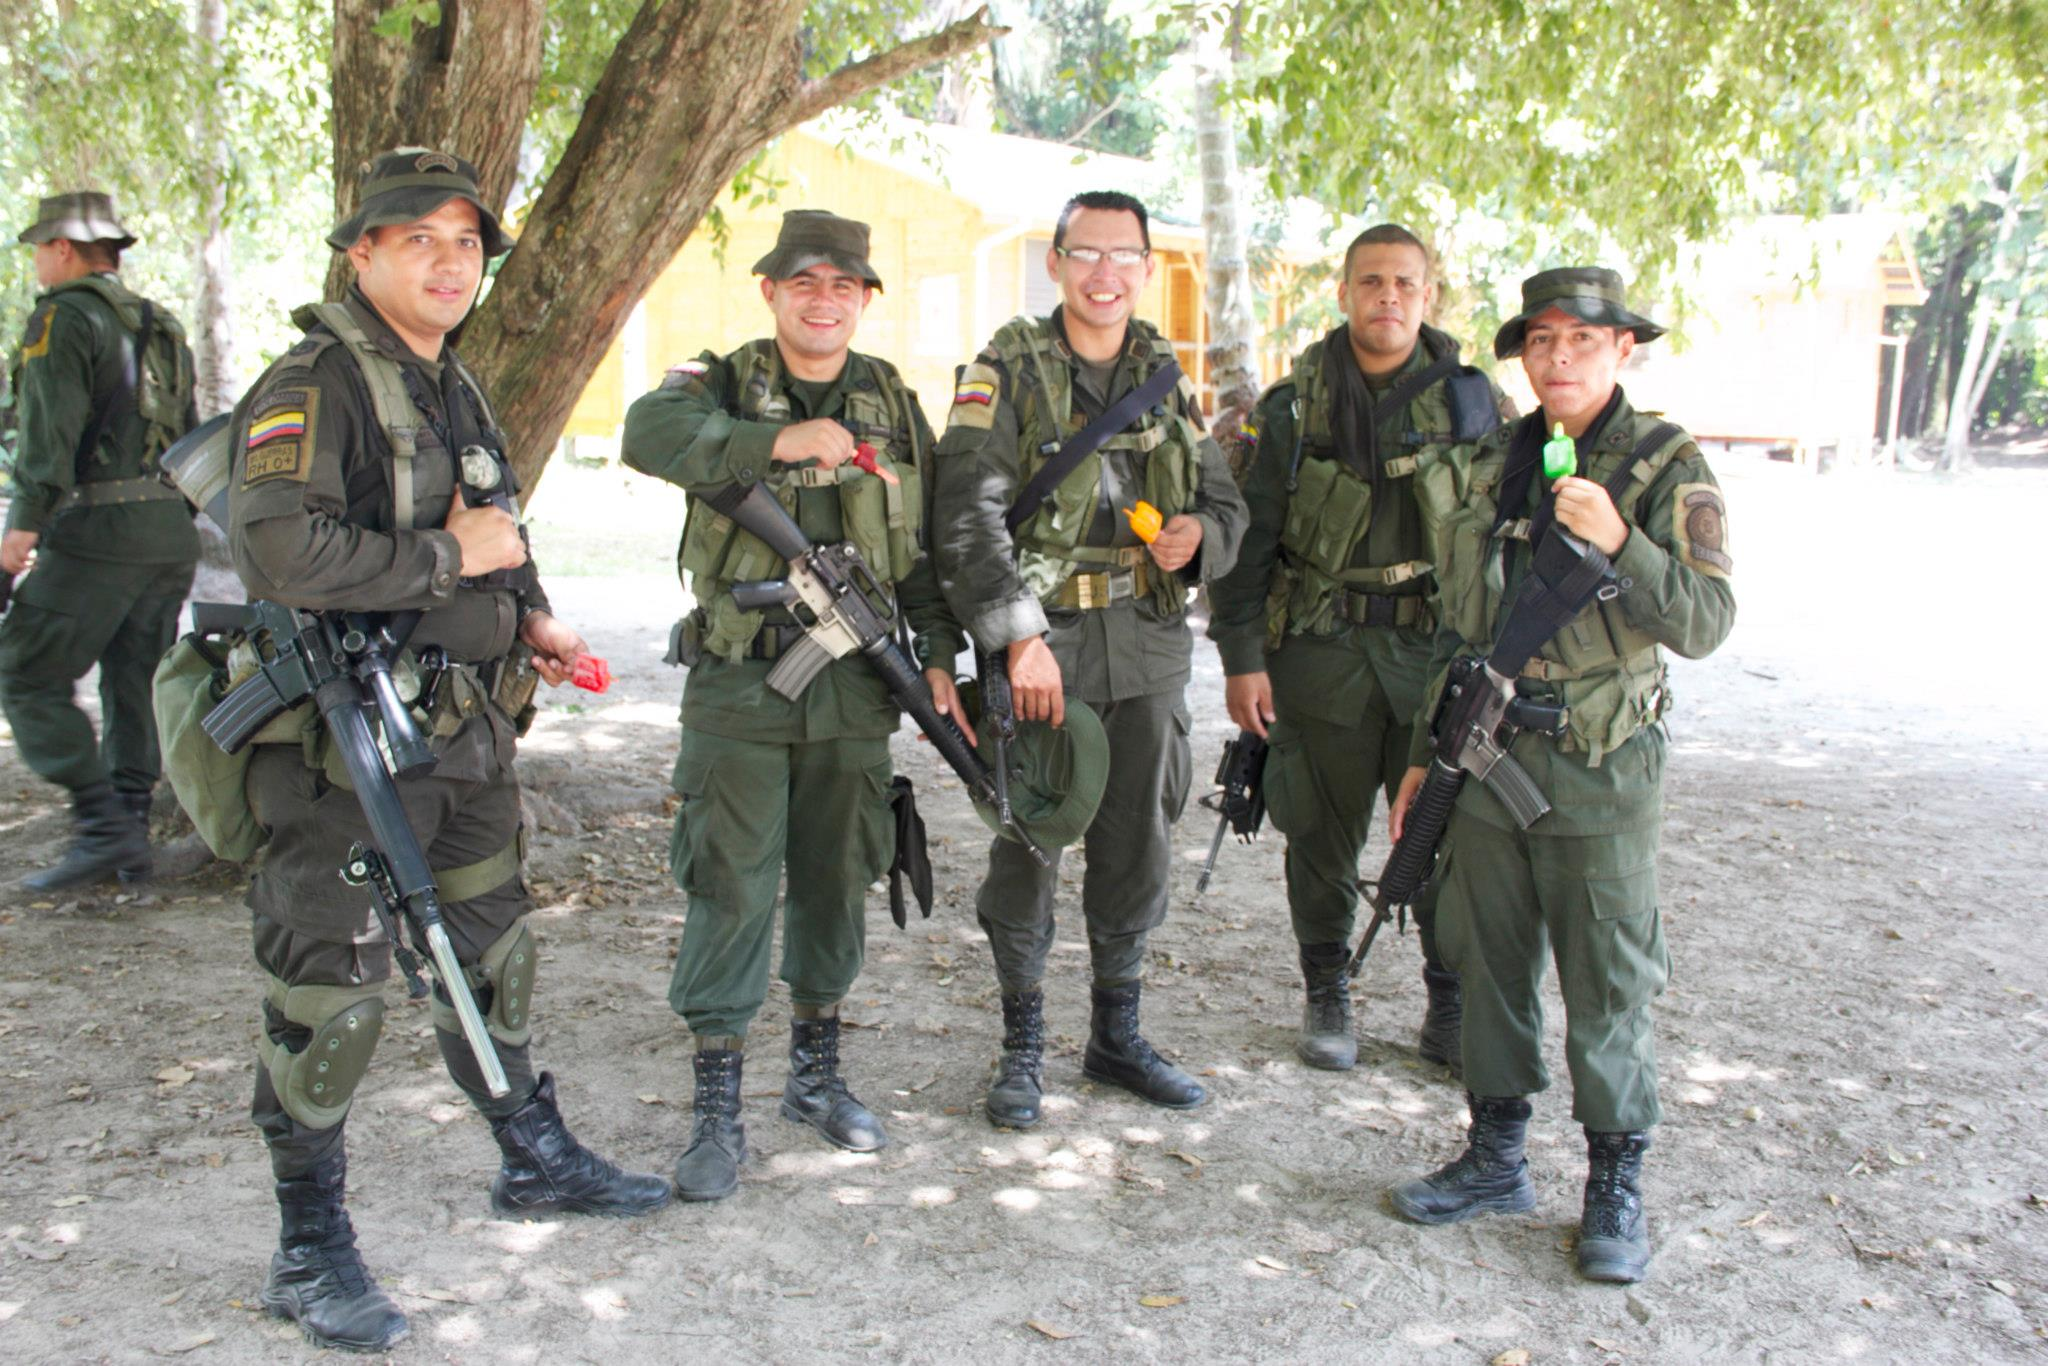 Colombian Army eating popsicles.